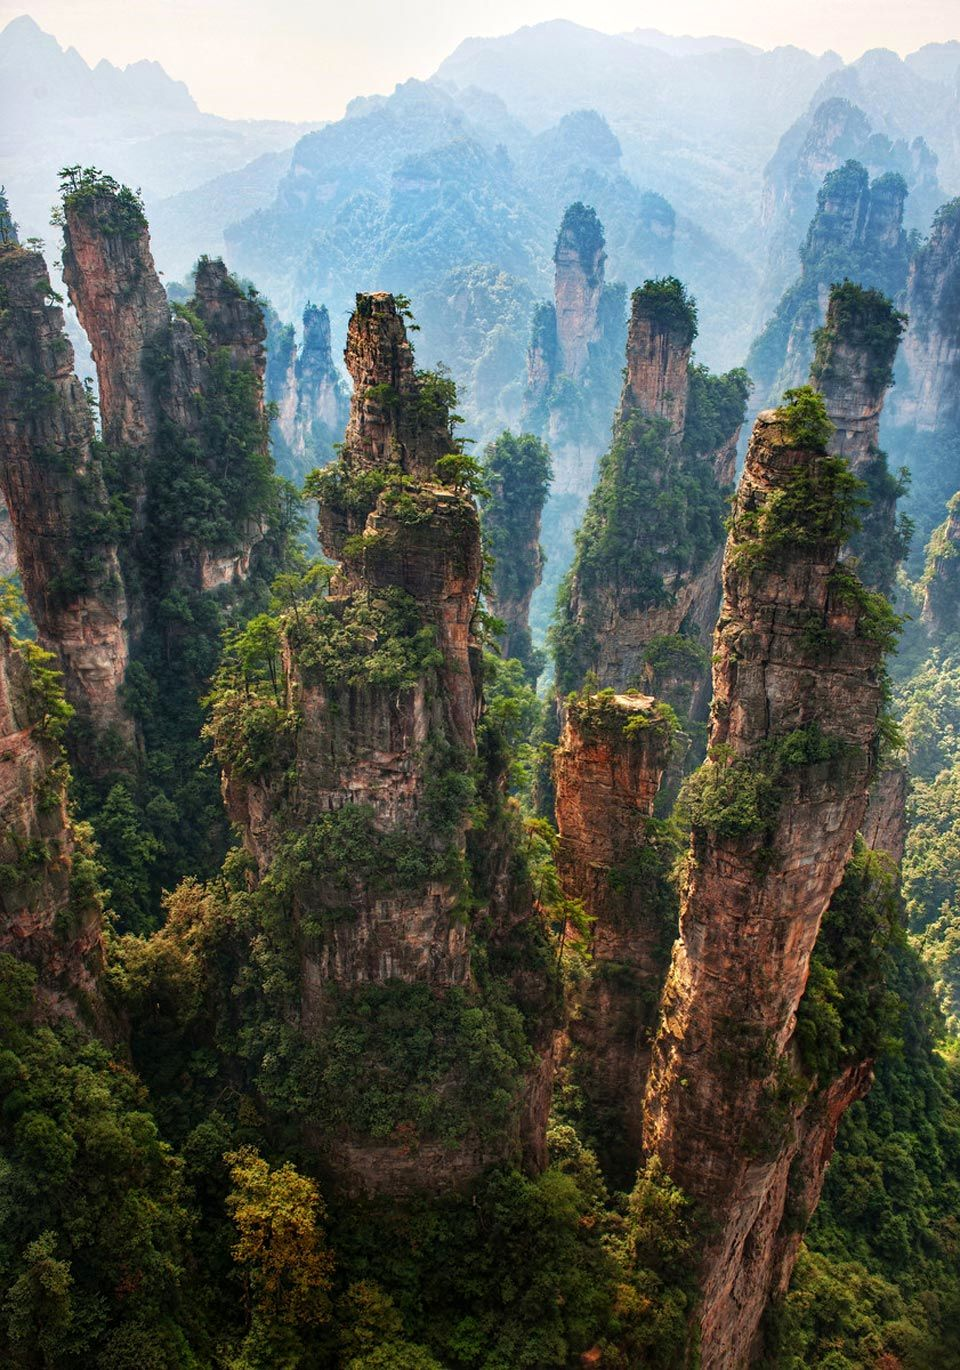 Avatar Hallelujah Mountain - Zhangjiajie National Forest Park